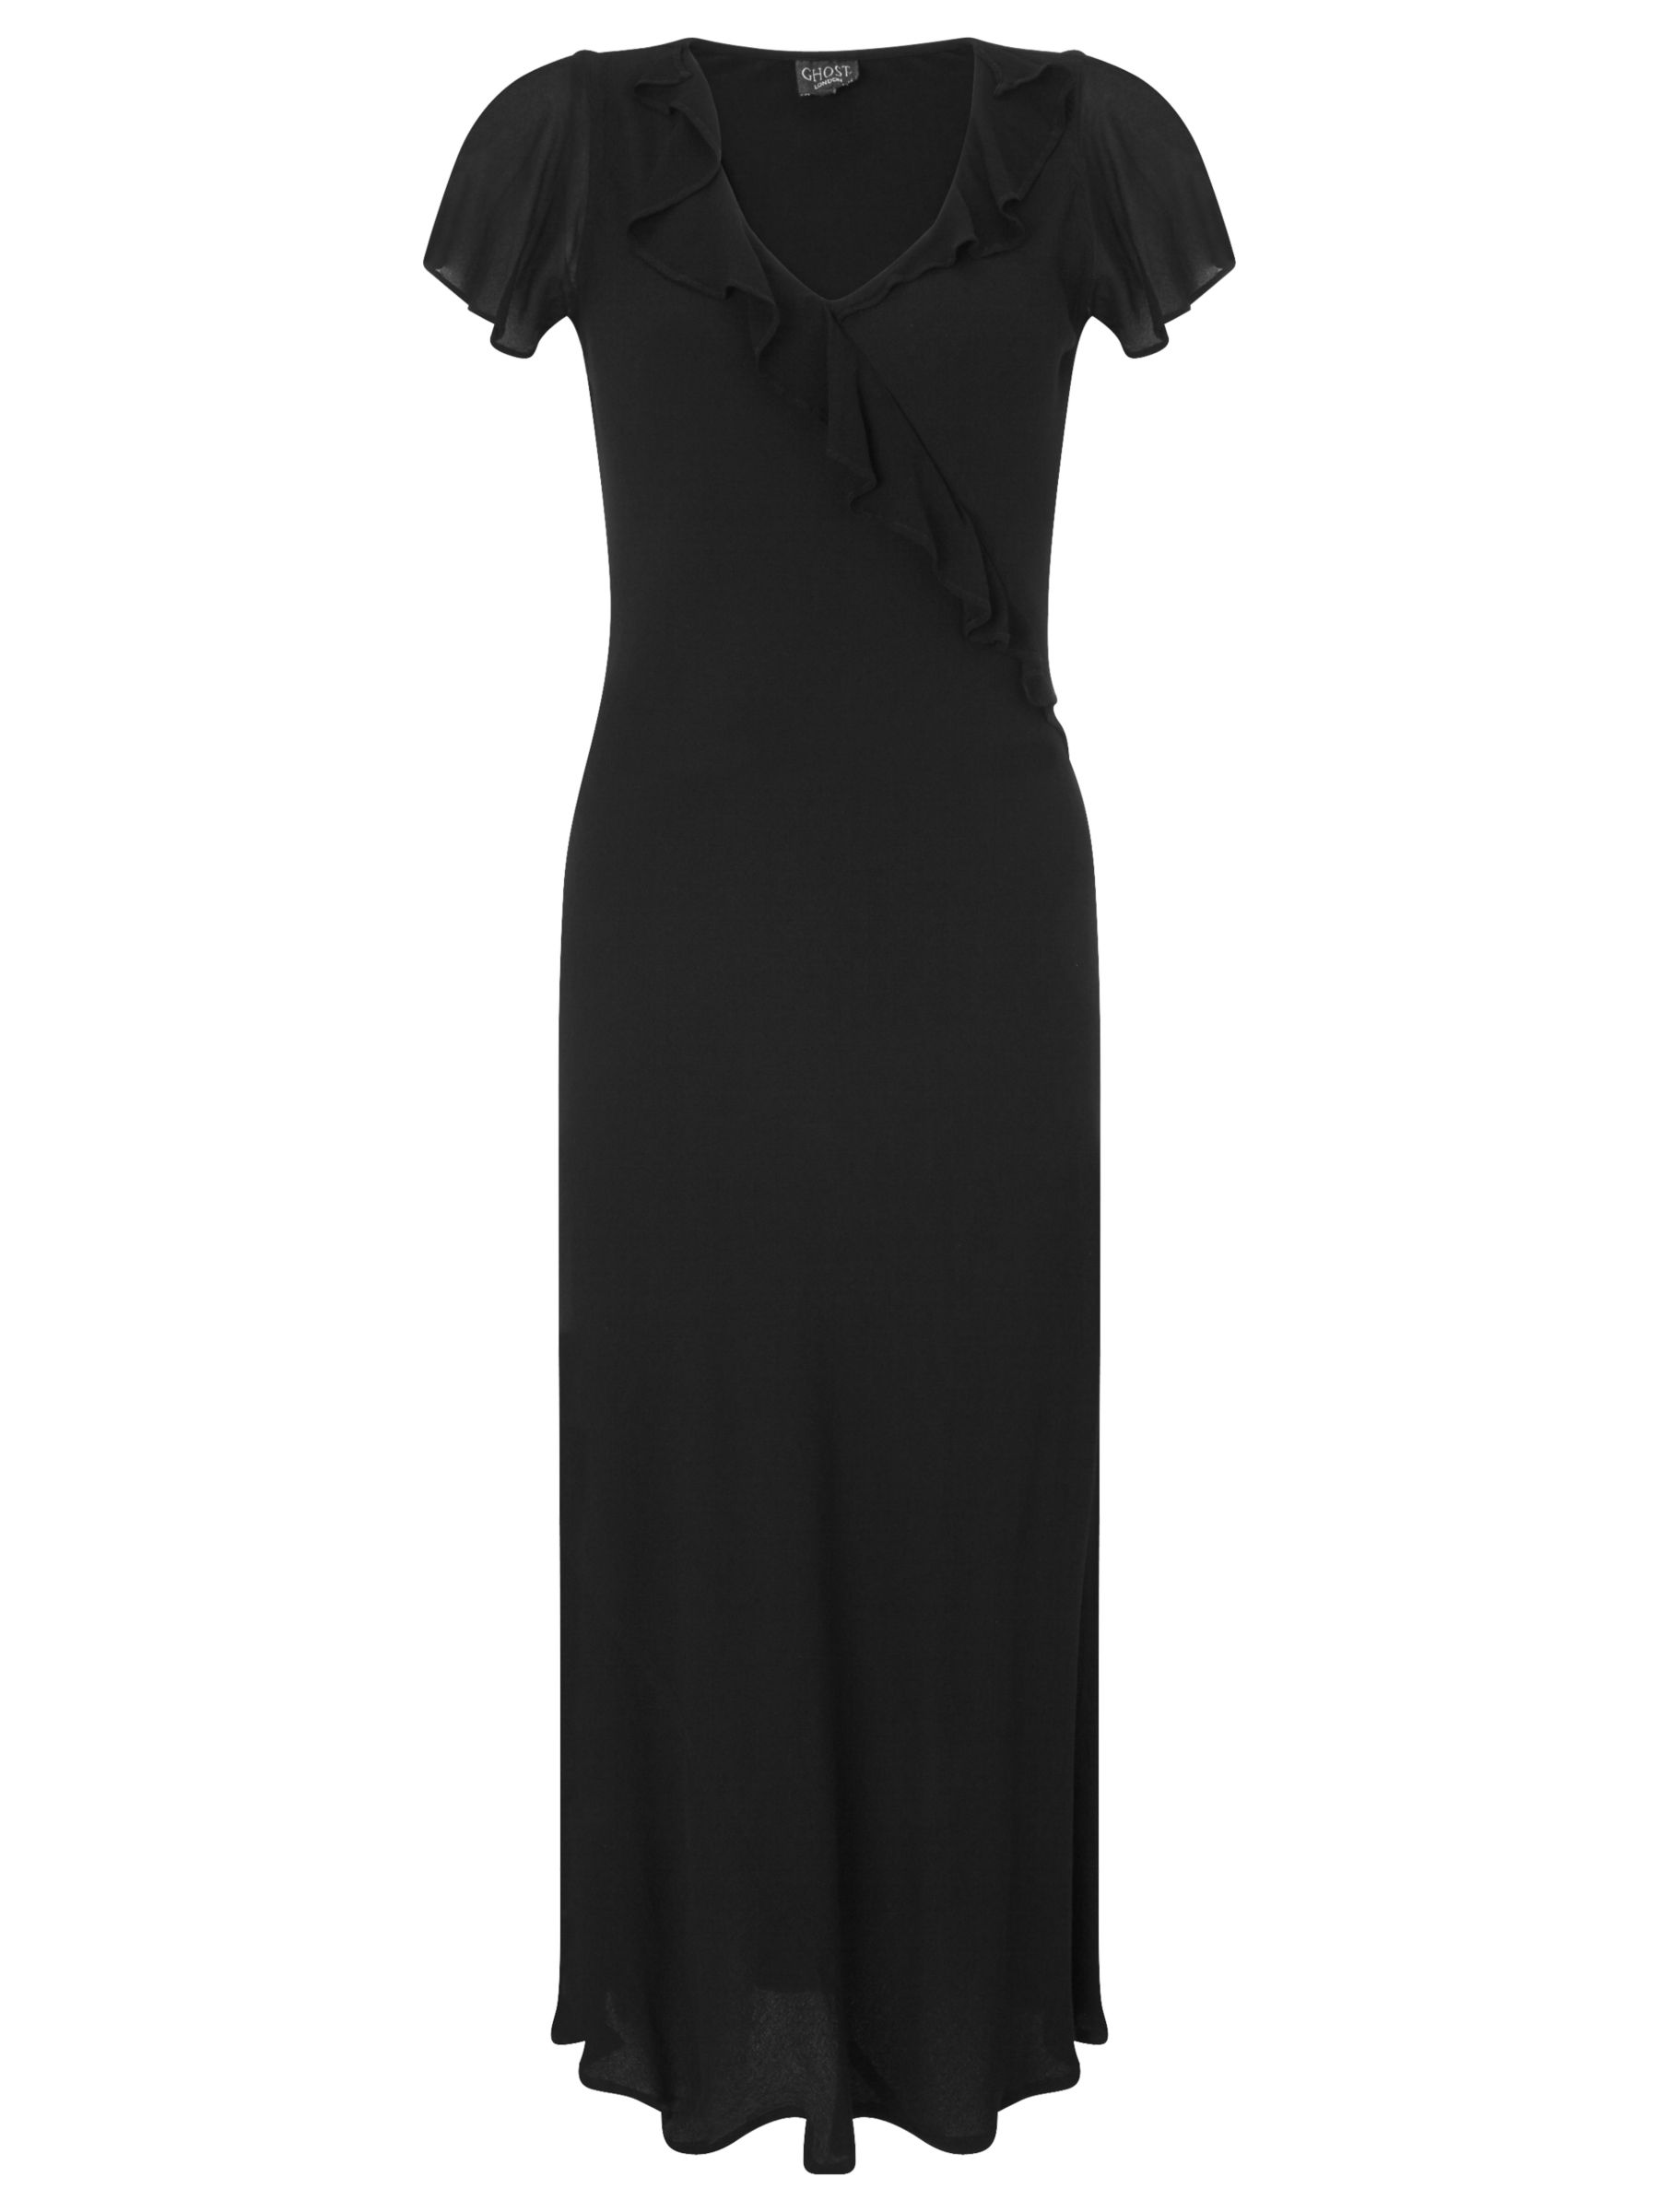 ghost karen dress black, ghost, karen, dress, black, xs|s|m|l, women, womens dresses, 1879792